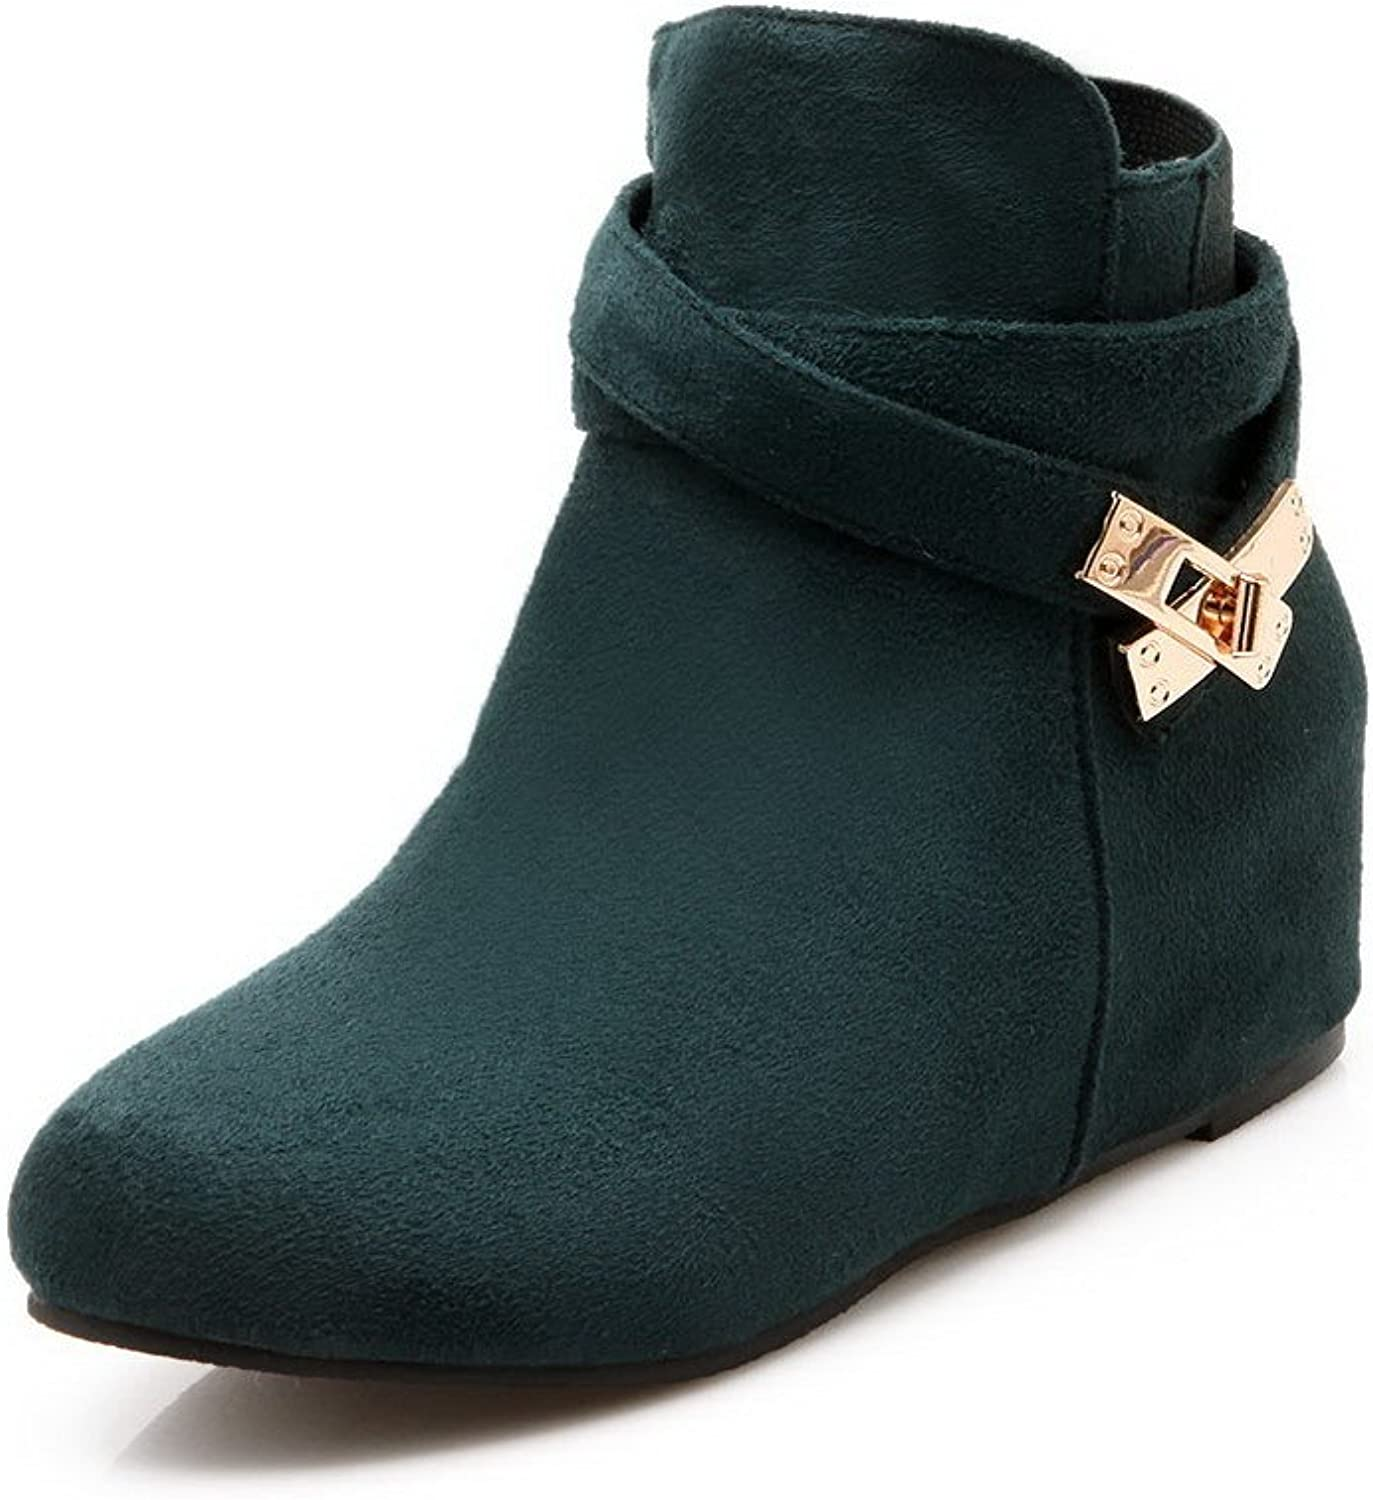 WeenFashion Women's Frosted Round Closed Toe Solid Ankle-high Kitten-Heels Boots